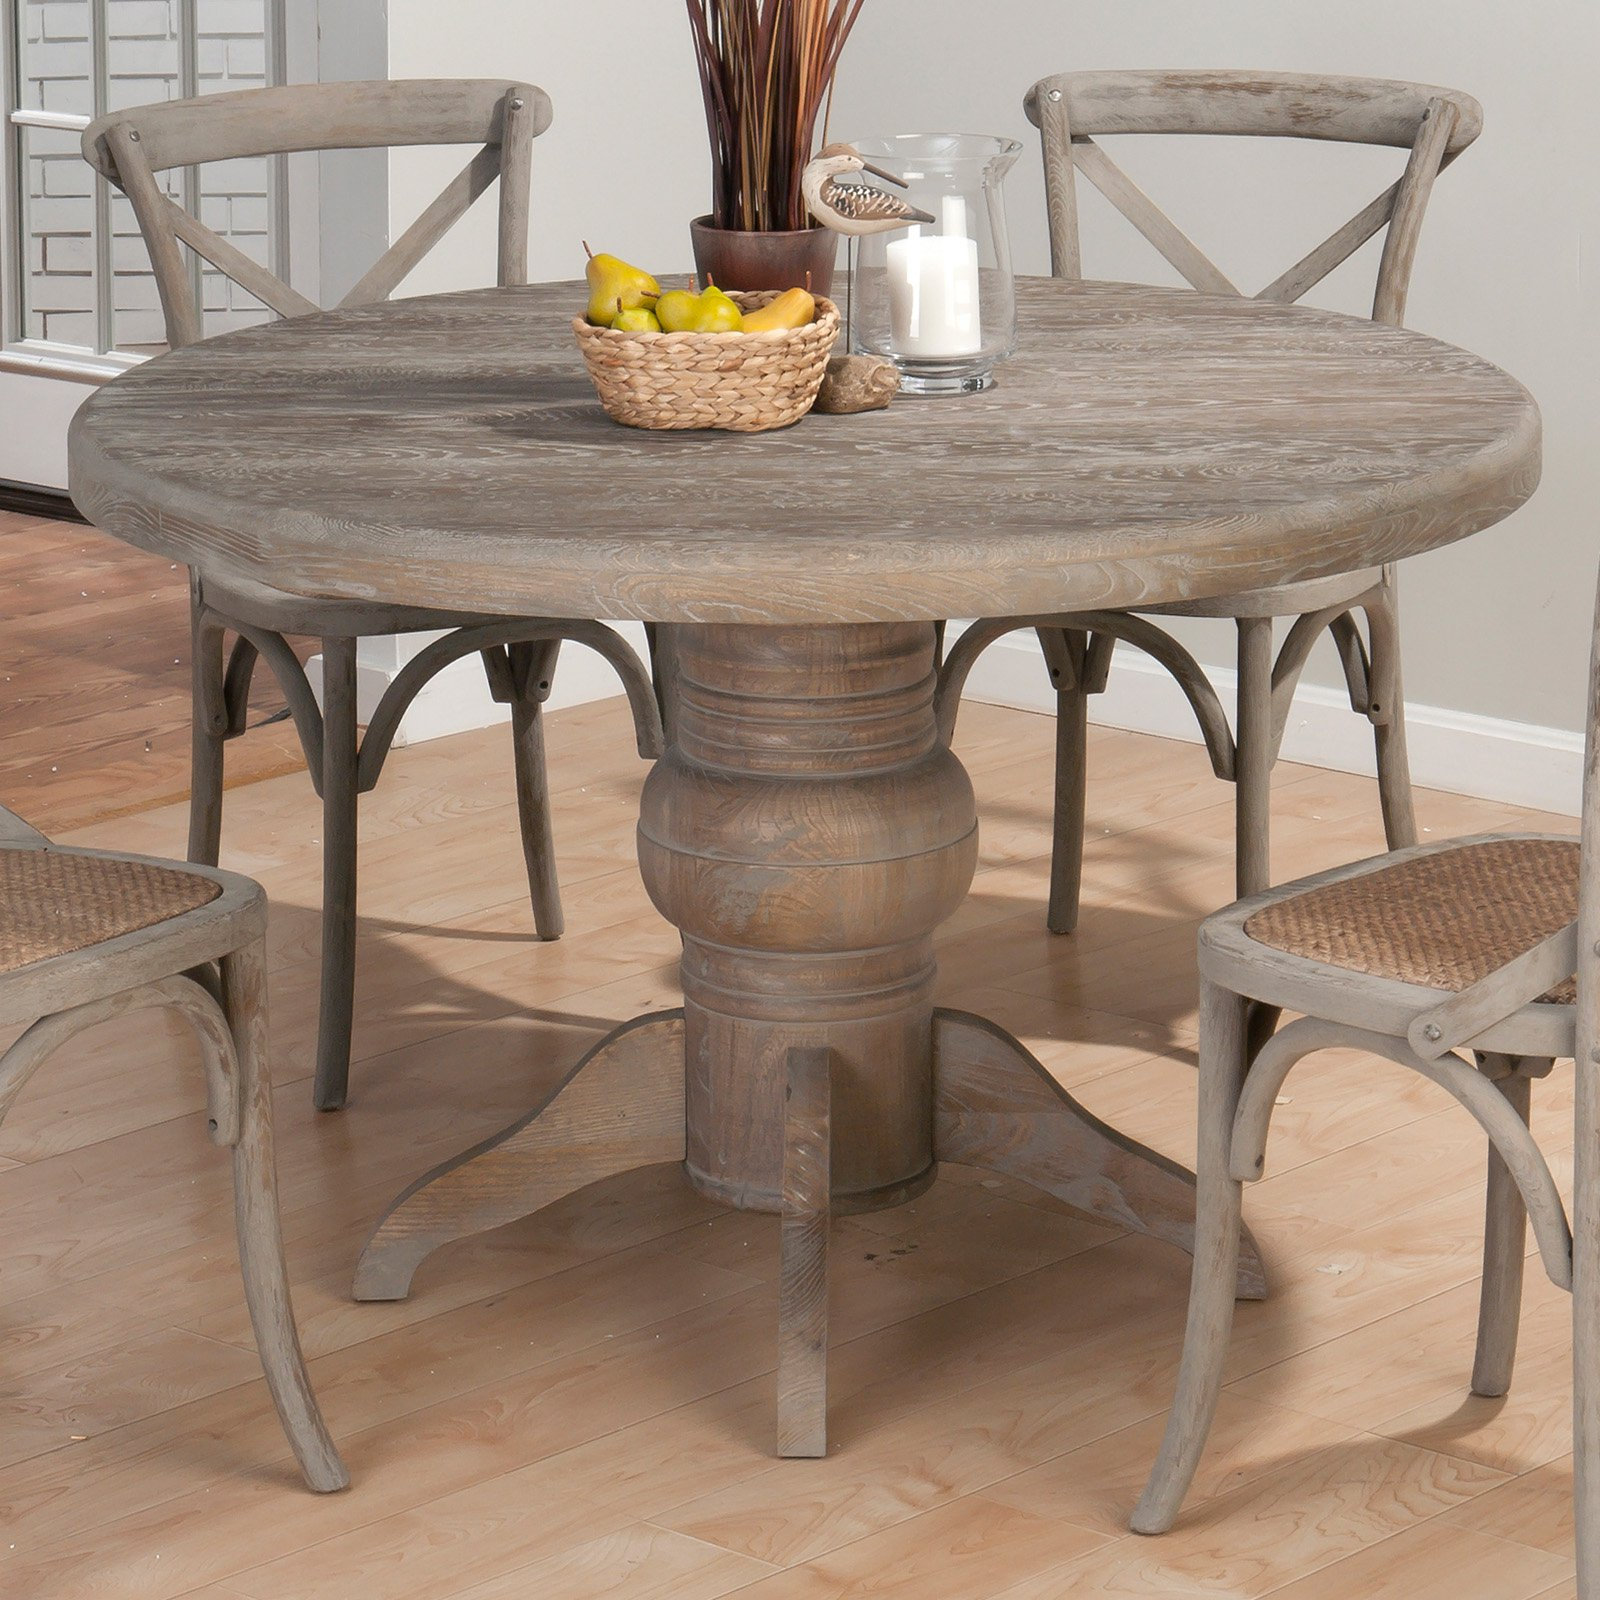 furniture pedestal dining room table inspirations round distressed kitchen white best gallery tables solid wood set for oval circle and chairs with top black wooden accent